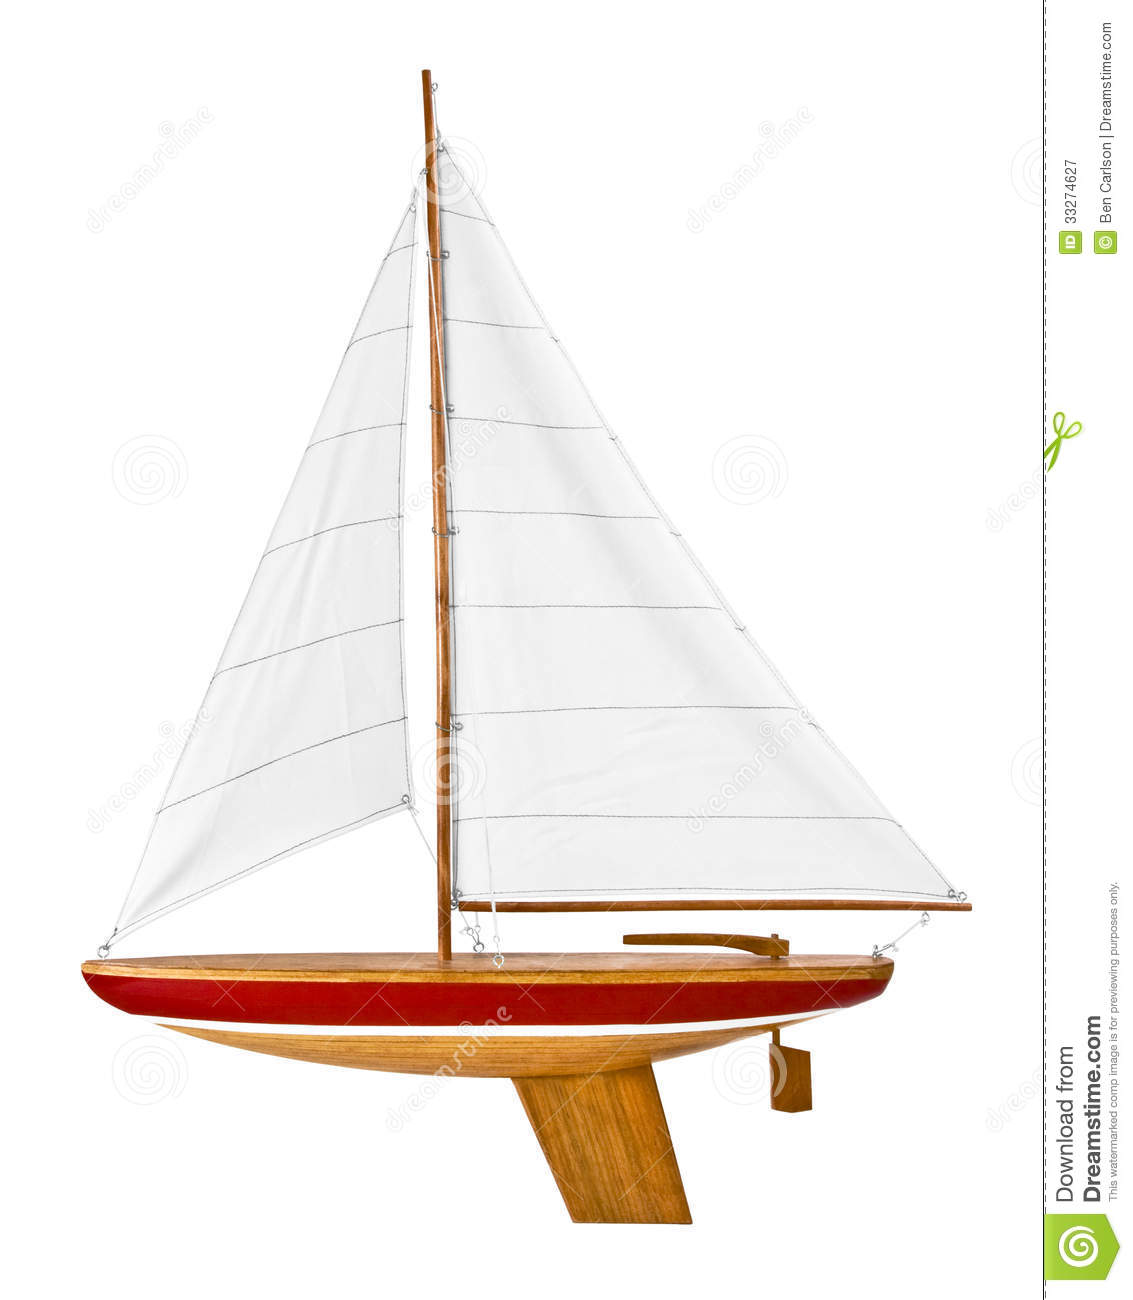 This is a wooden toy sailboat ready to put in the water and play. It ...